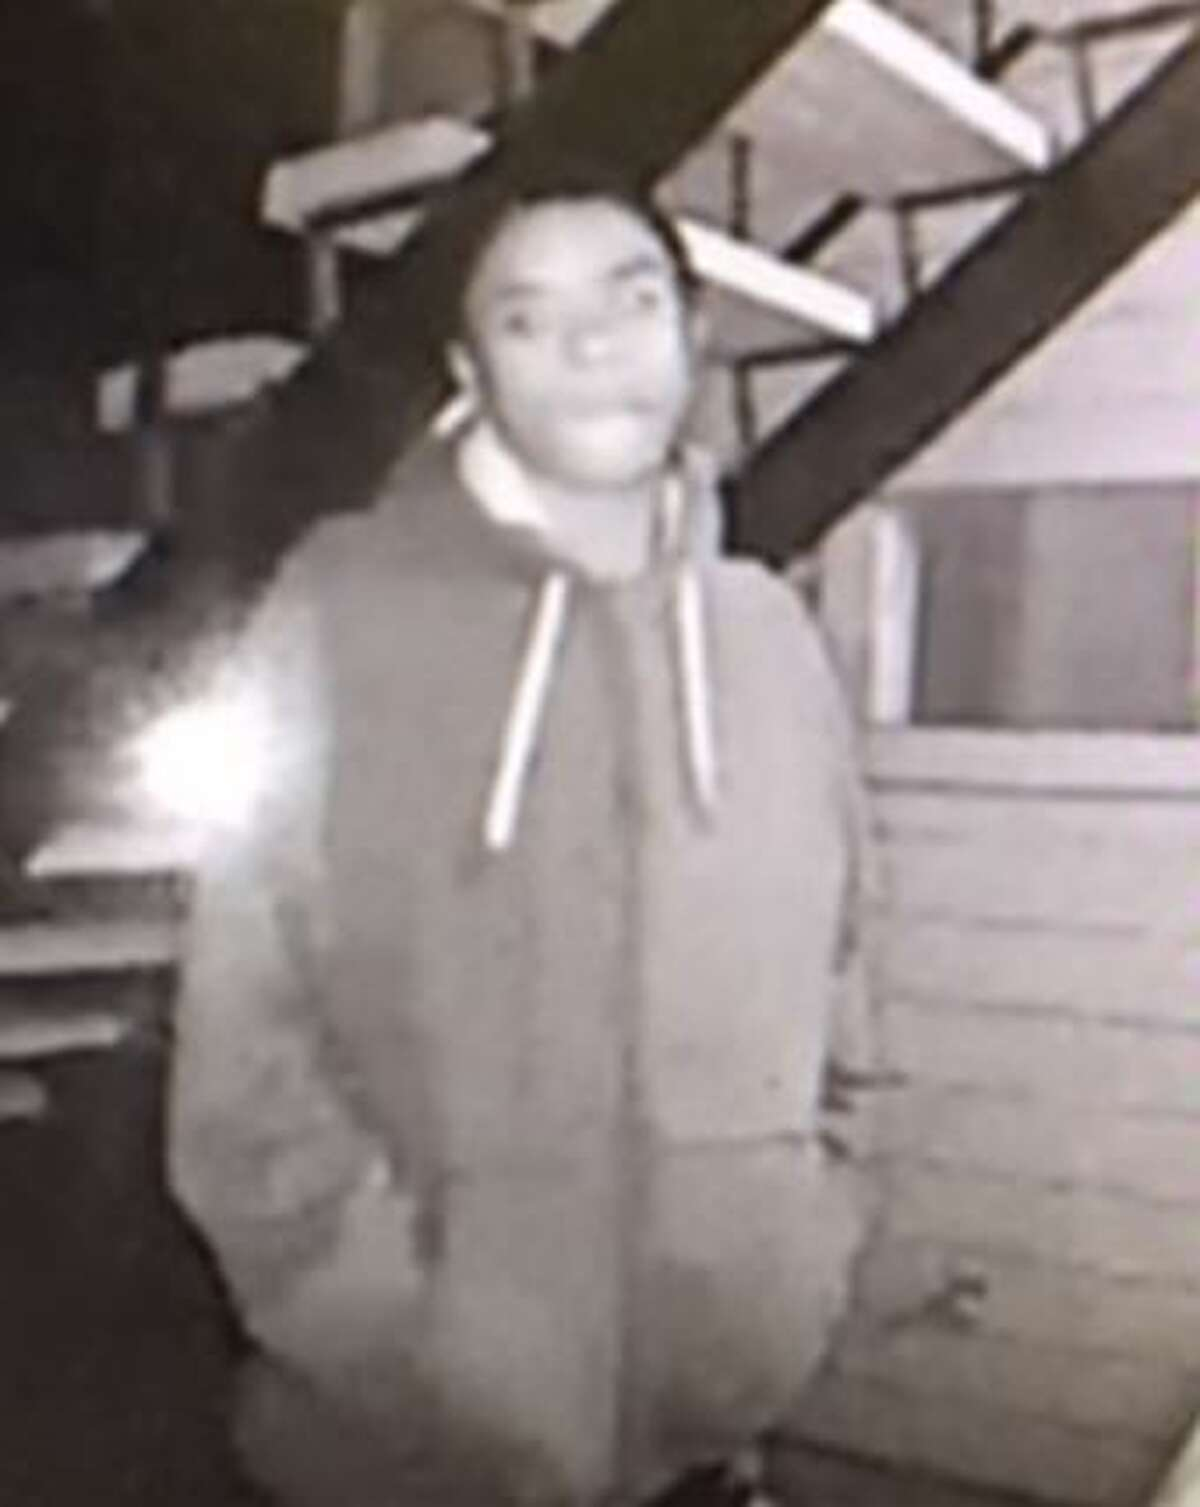 The suspect is described as a black man who is about 5 feet 8 inches tall. He is accused of participating in an armed robbery in early October on the West Side.